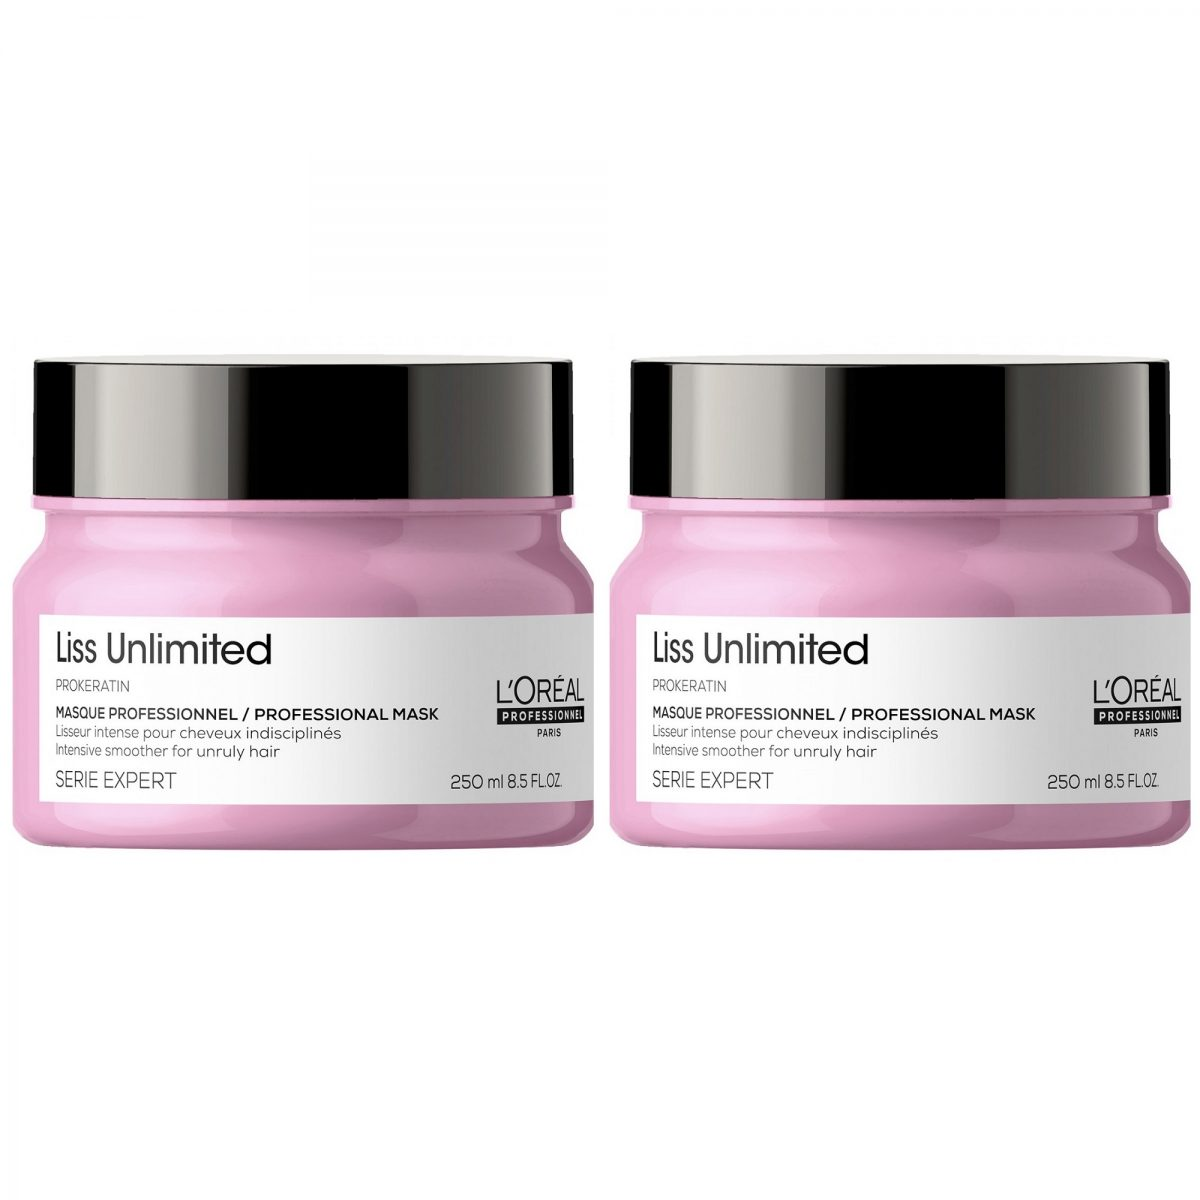 28_Emphase_Loreal_Profesional_Liss_Unlimited_Prokeratin_Duo_Mascarilla_250ml